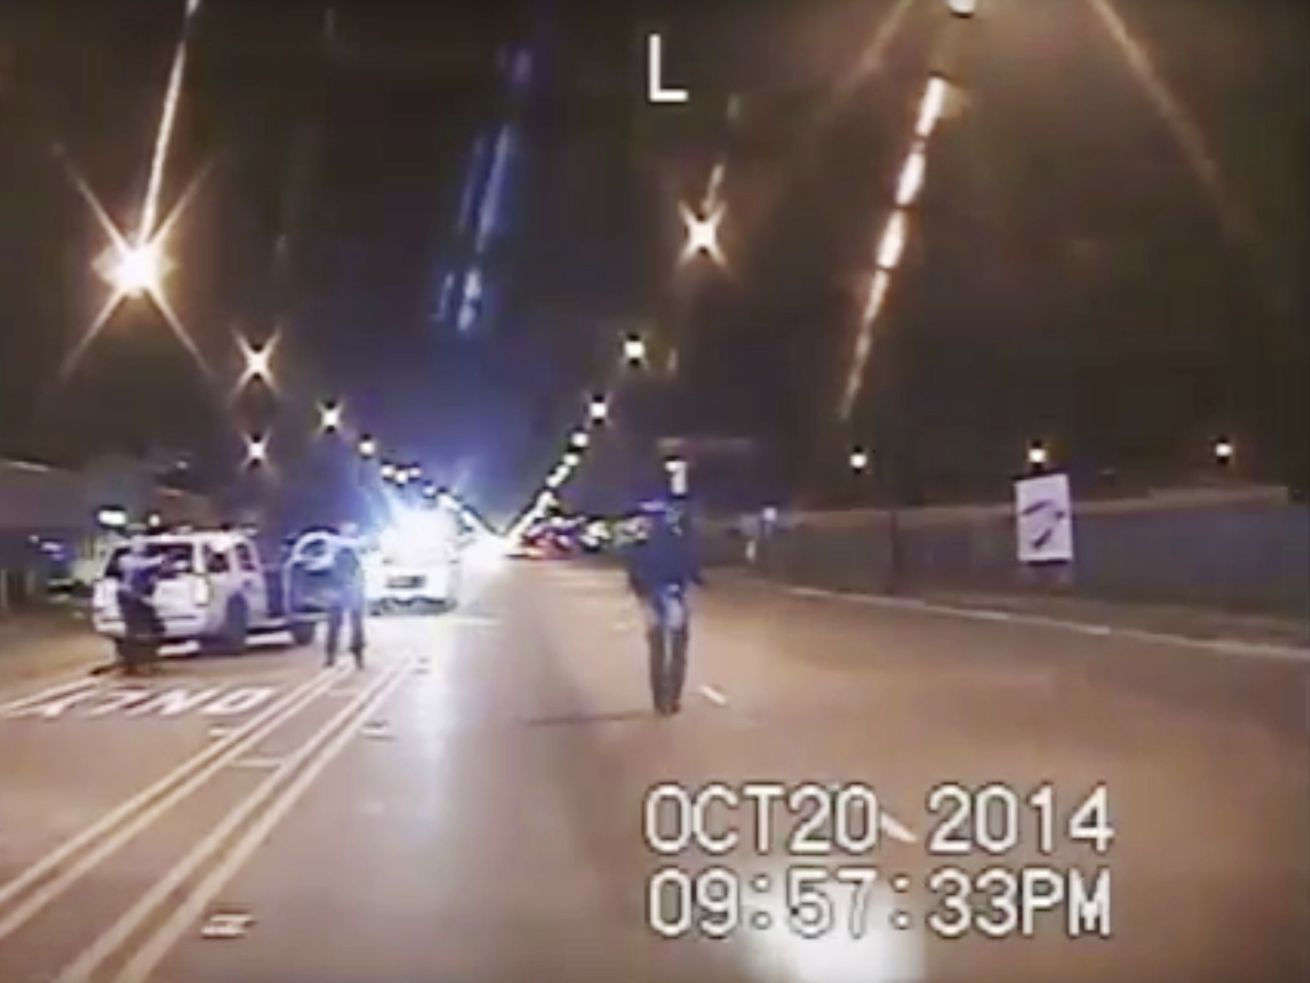 In this Oct. 20, 2014 frame from dash-cam video provided by the Chicago Police Department, Laquan McDonald, right, walks down the street moments before being fatally shot by Officer Jason Van Dyke. The shooting led to a consent decree the department is currently under.